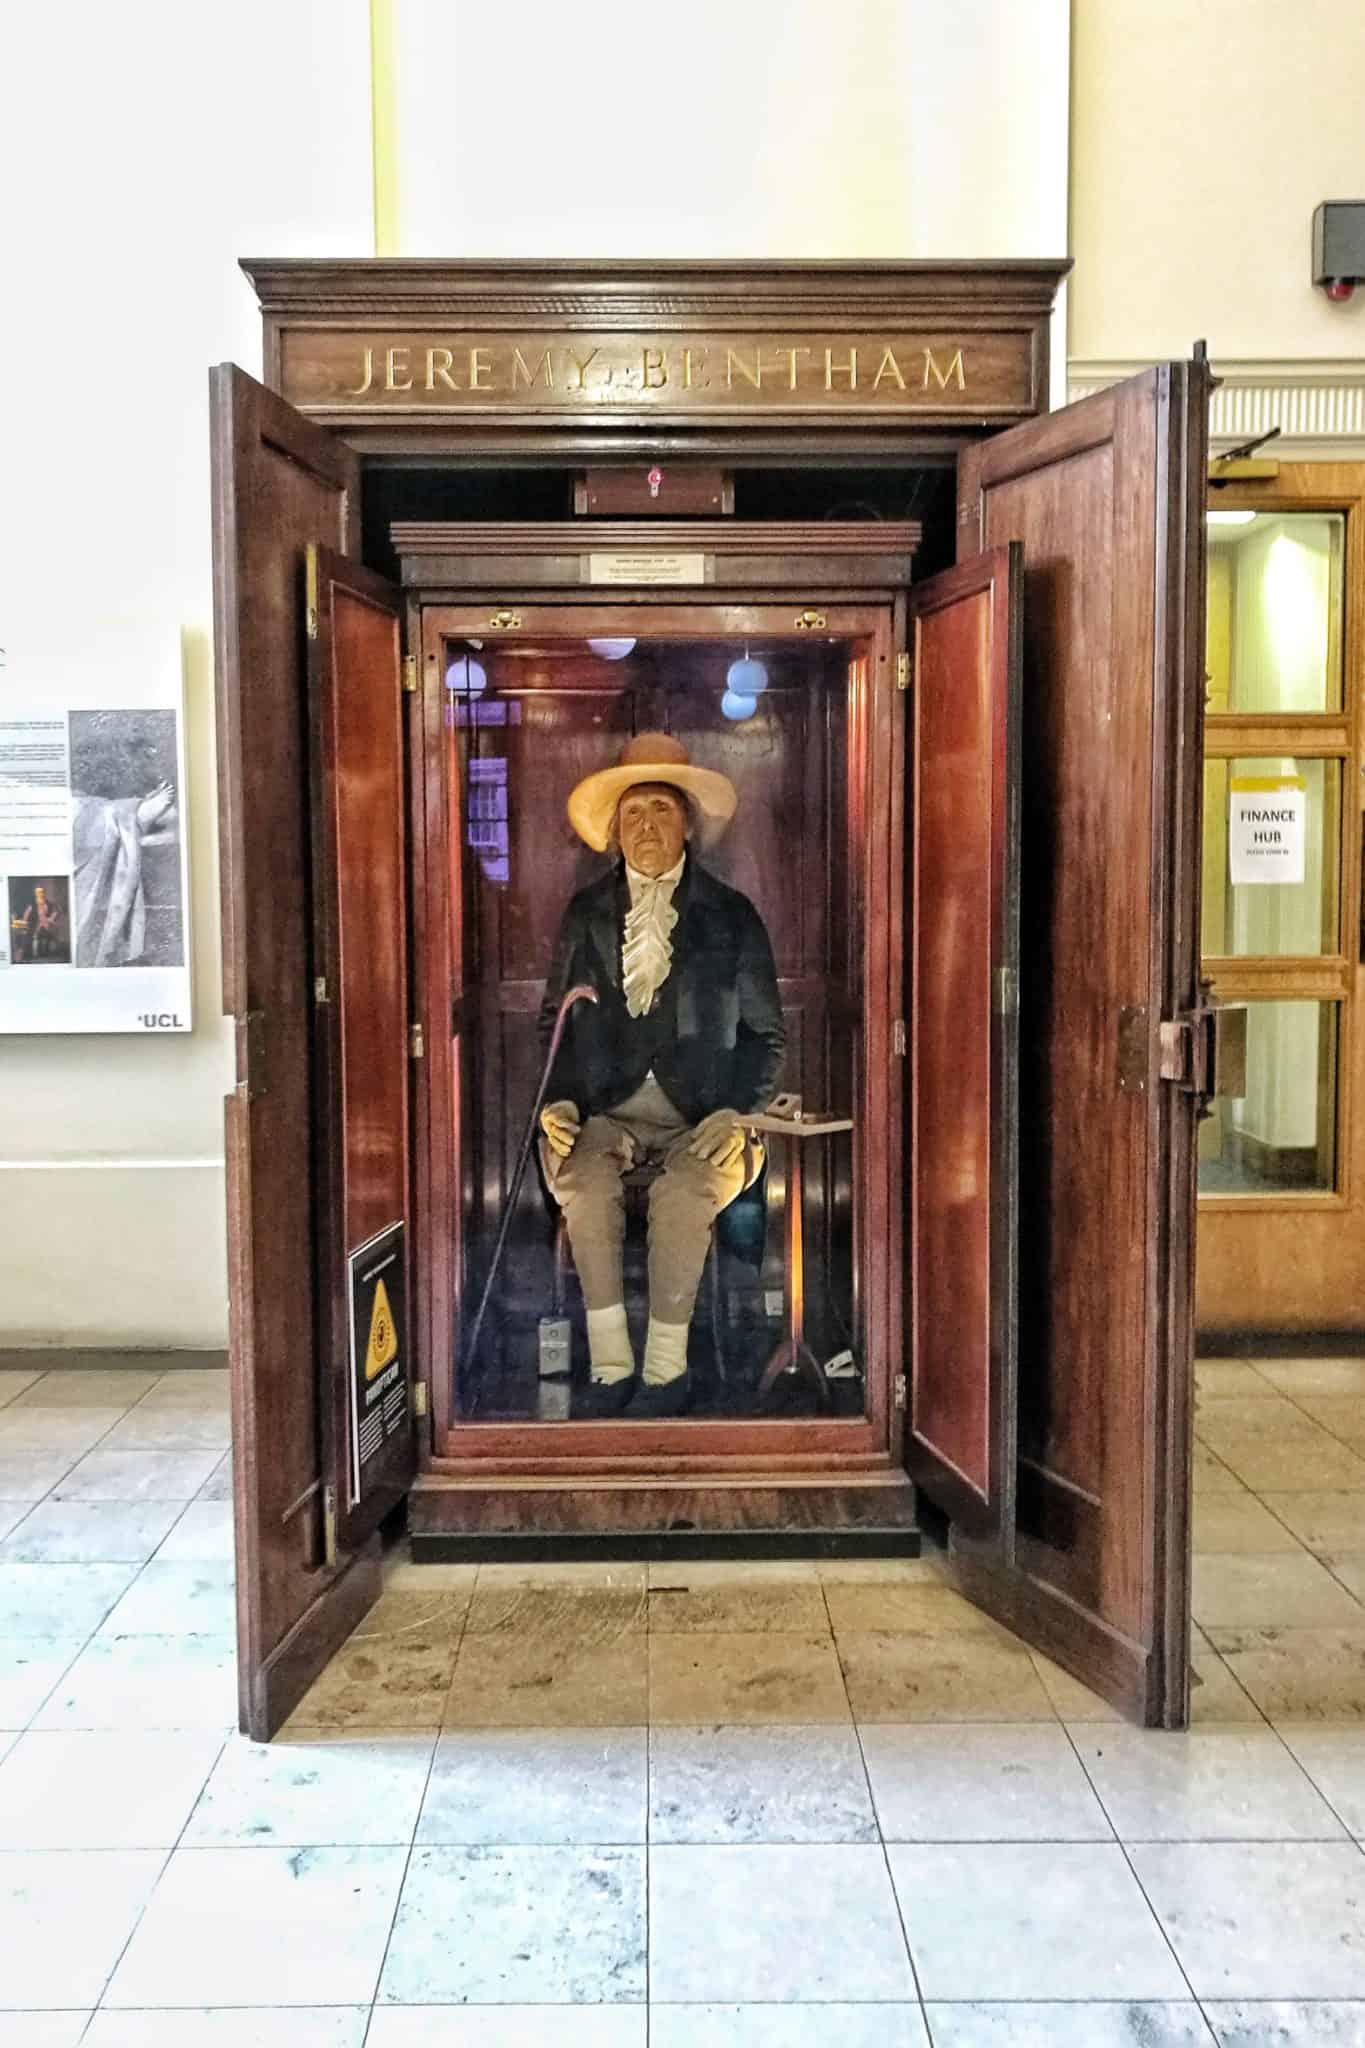 jeremy bentham's body ucl london